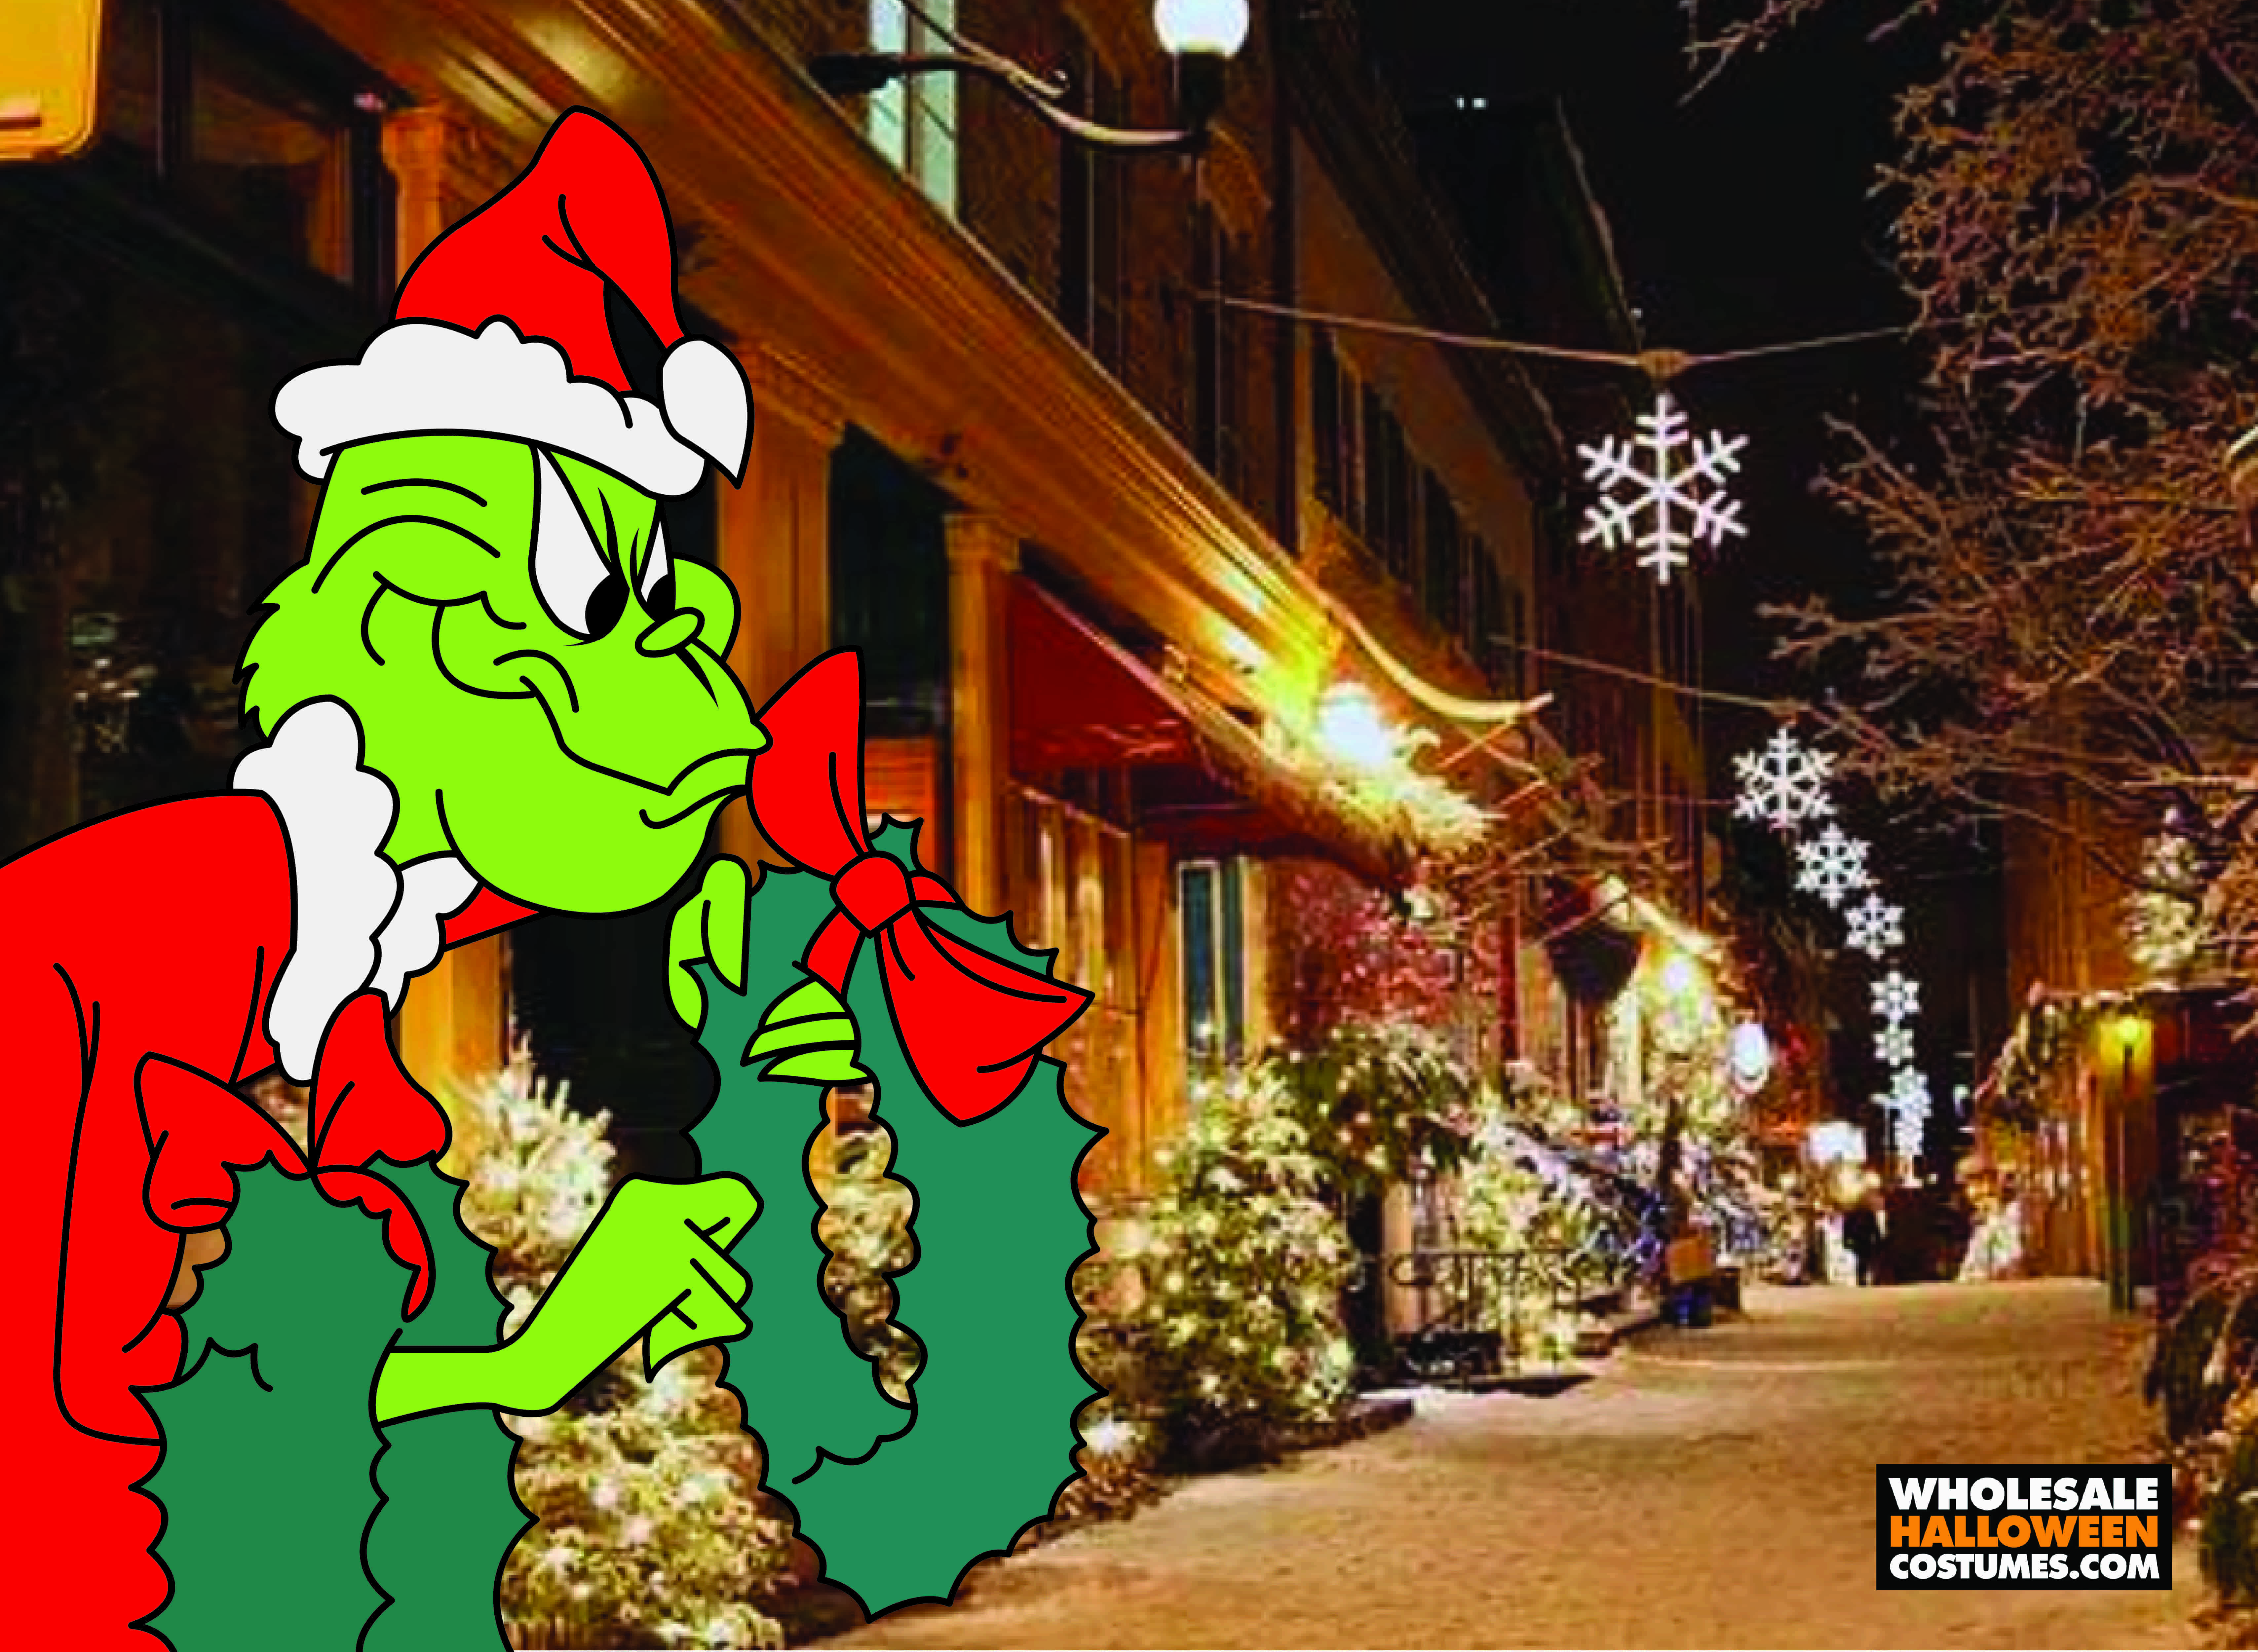 grinch-poster-04-min